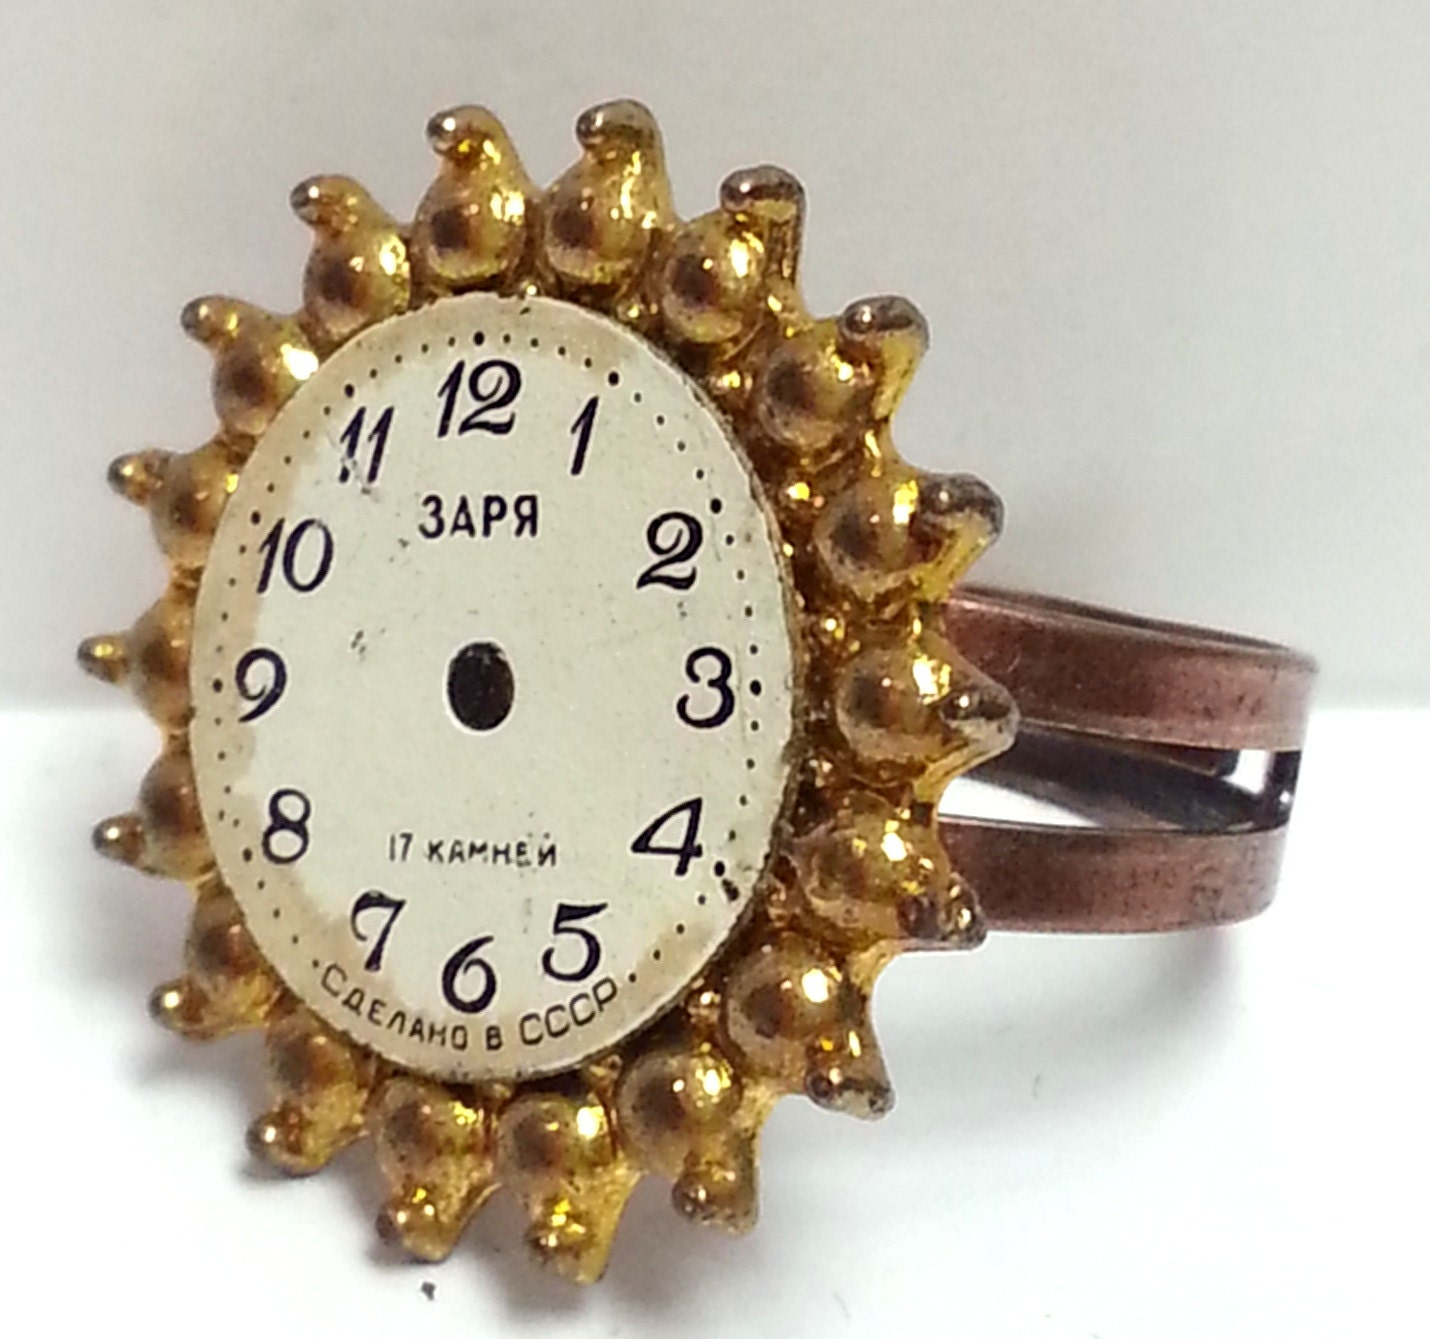 Ring In The Steampunk Decor To Pimp Up Your Home: Steampunk Golden Clock Ring